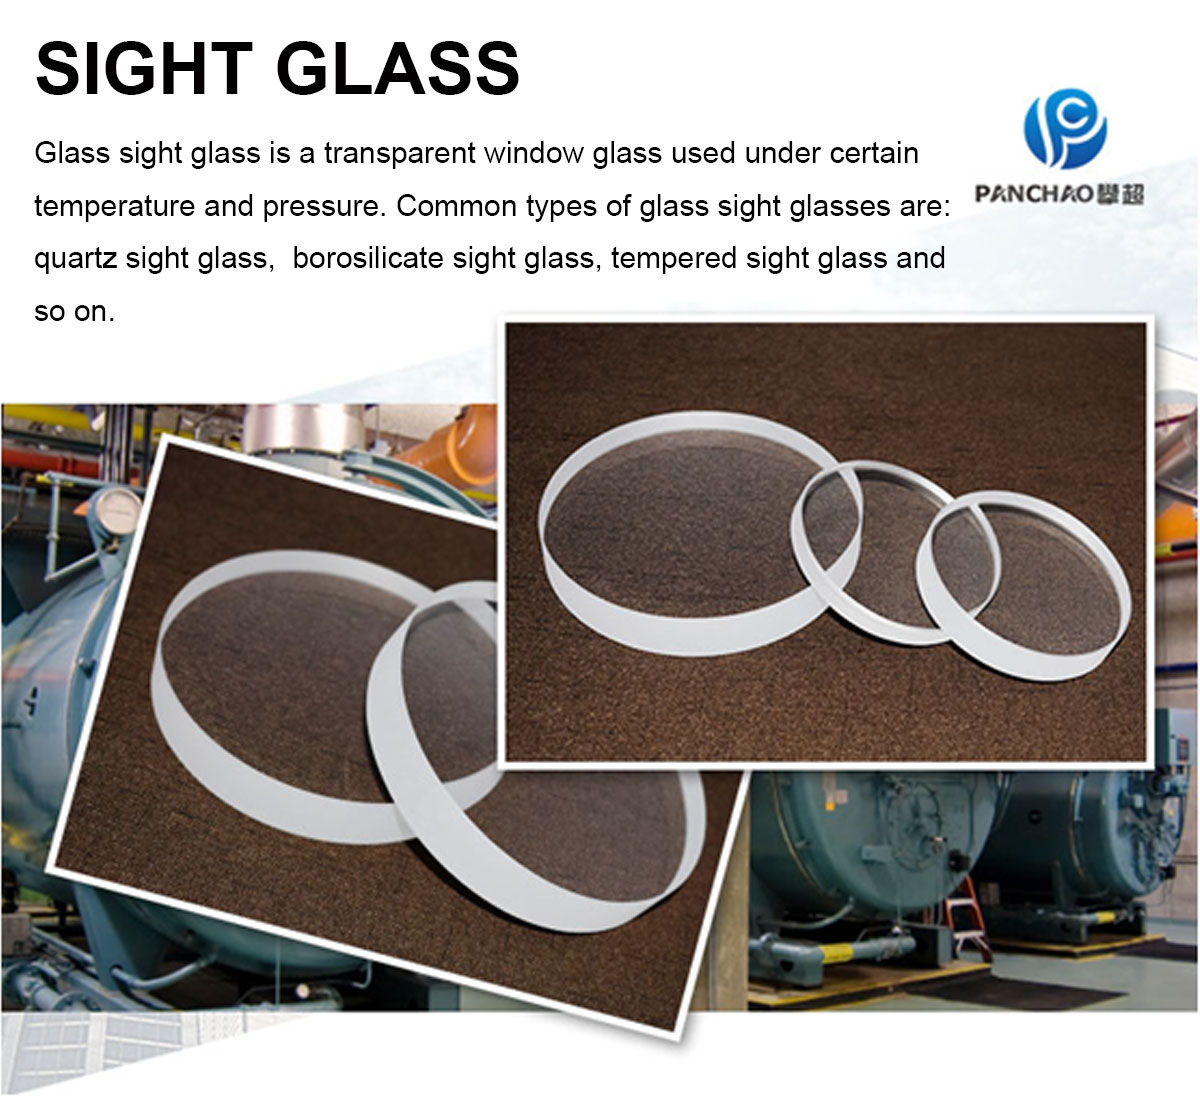 Heat Resistant Safety High Transparency Pressure Sight Glass